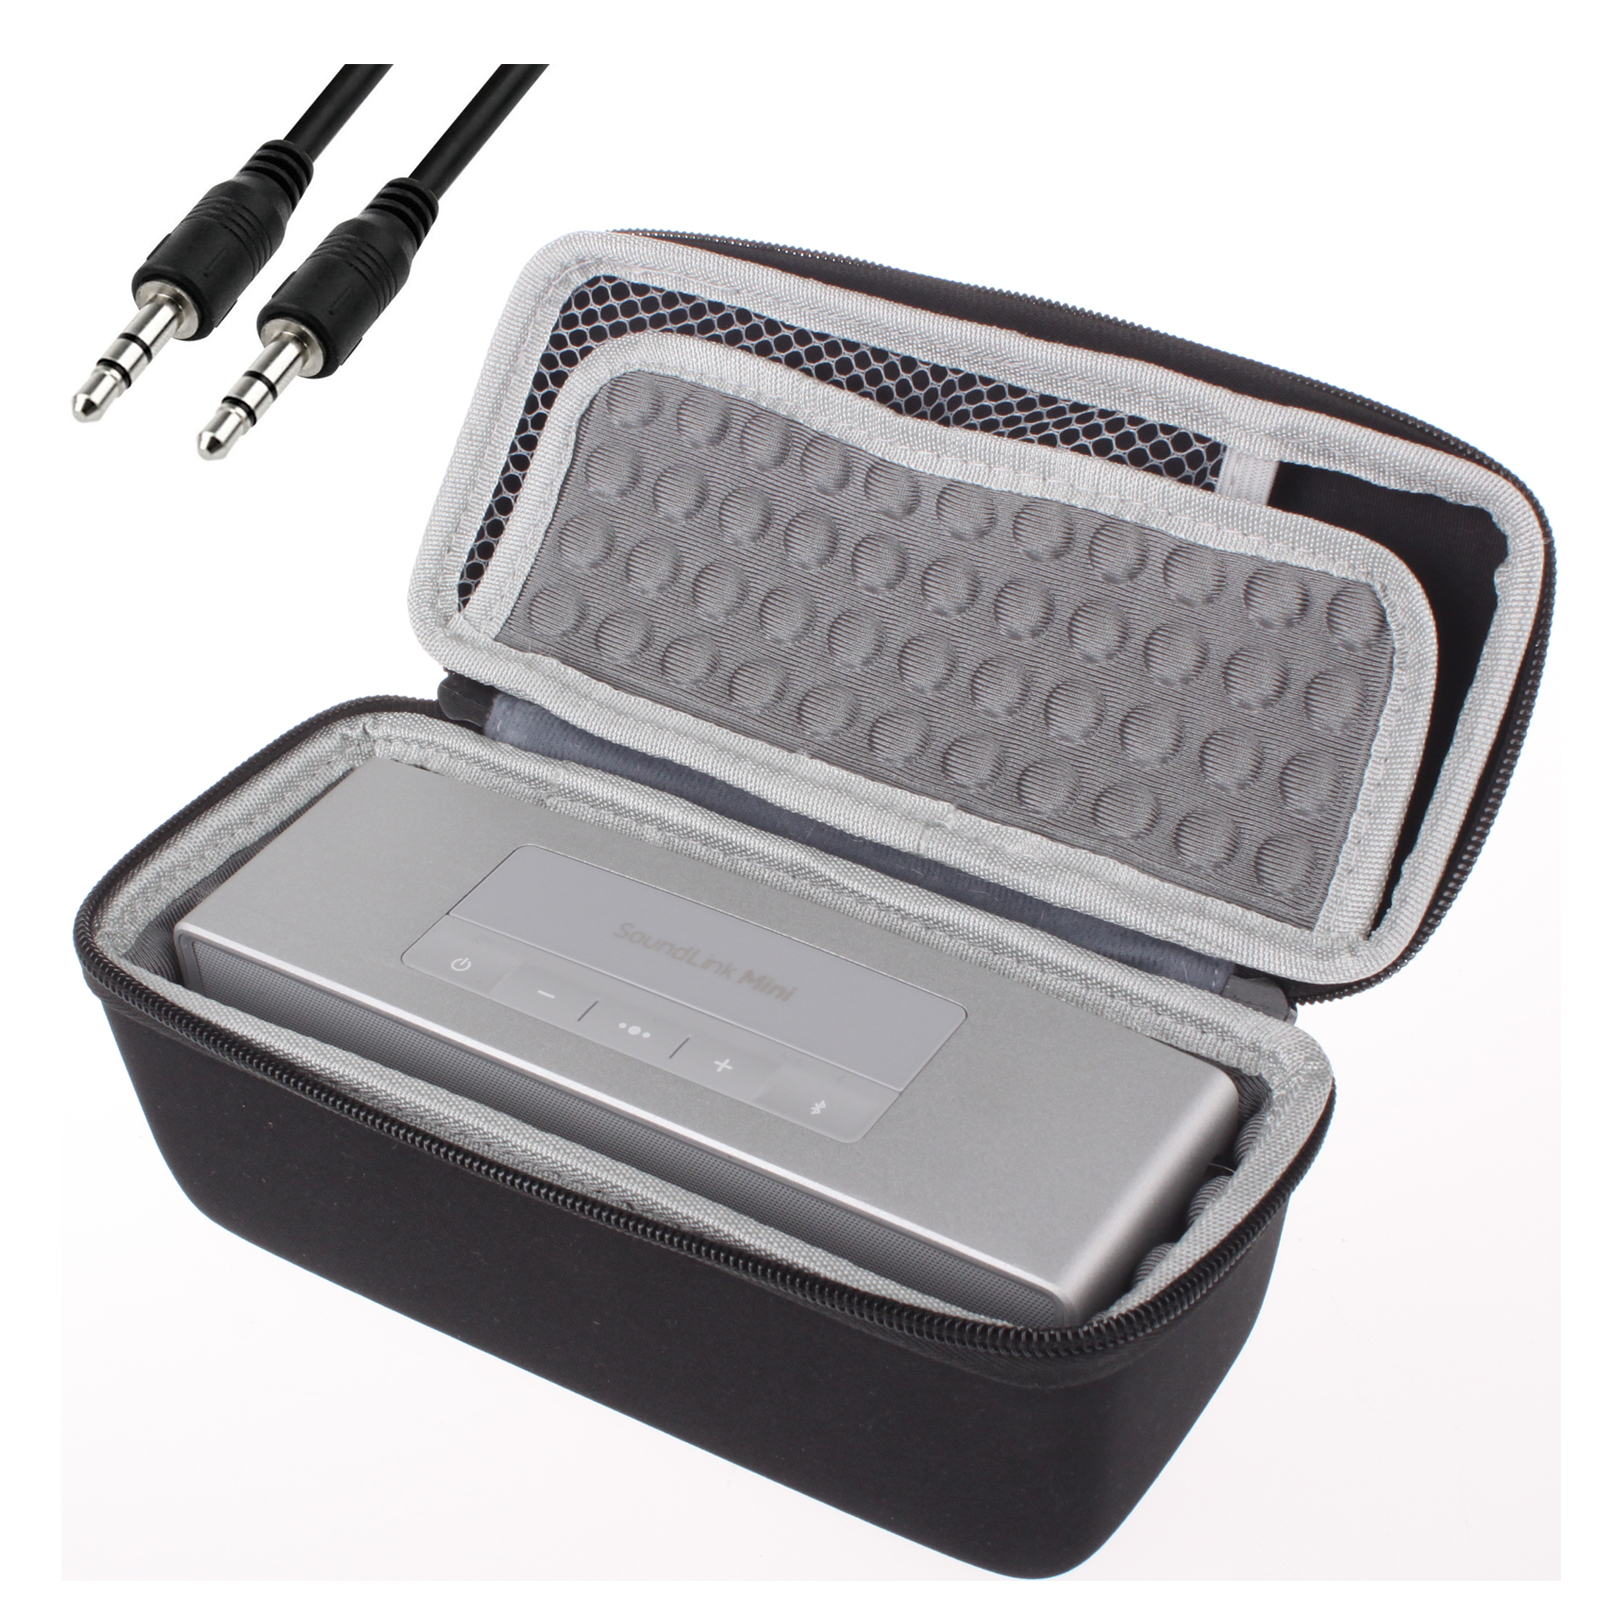 EEEKit for Bose Soundlink Mini Bluetooth Speaker II,Type A Portable Shockproof Carry Case Box Bag+3.5mm Audio Cable